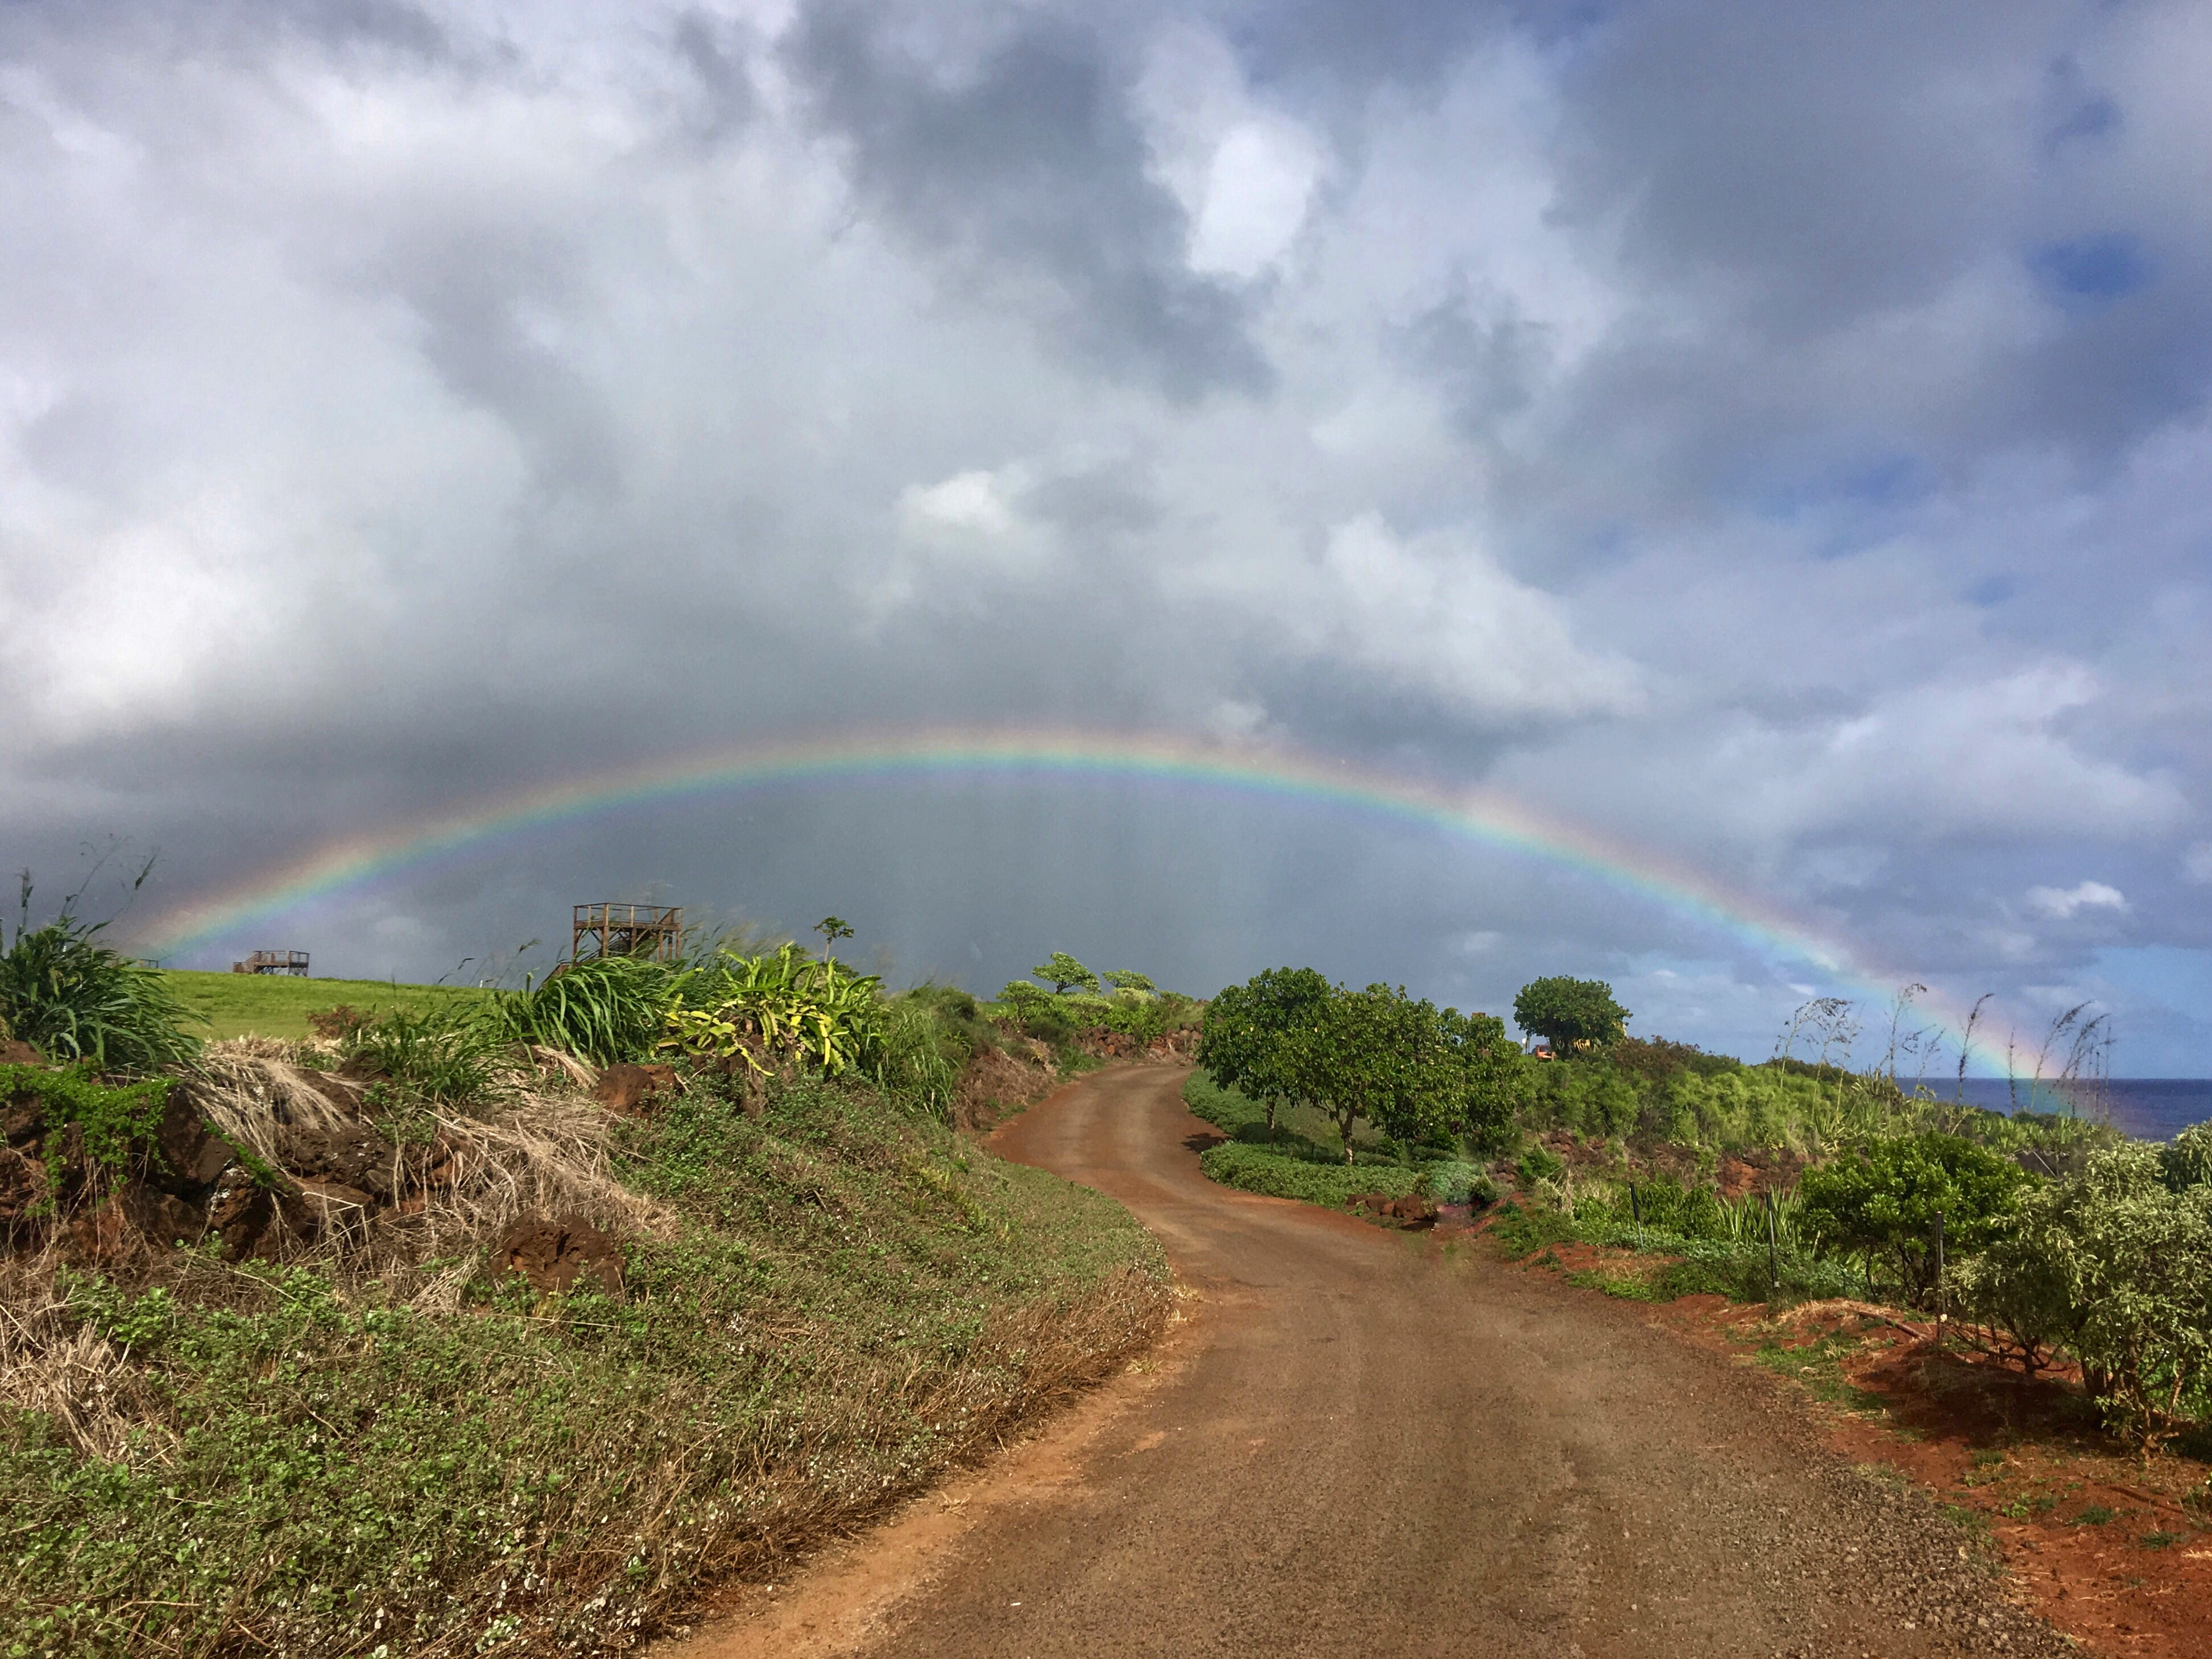 rainbow-photo-kauai-dirt-road-business-money-entrepreneur-financial-freedom-how-to-make-money-online-work-from-home-jobs-online-jobs-earn-money-online-passive-income-small-business-ideas-FFJ-Laurens-Financial-Freedom-Journey-hawaii